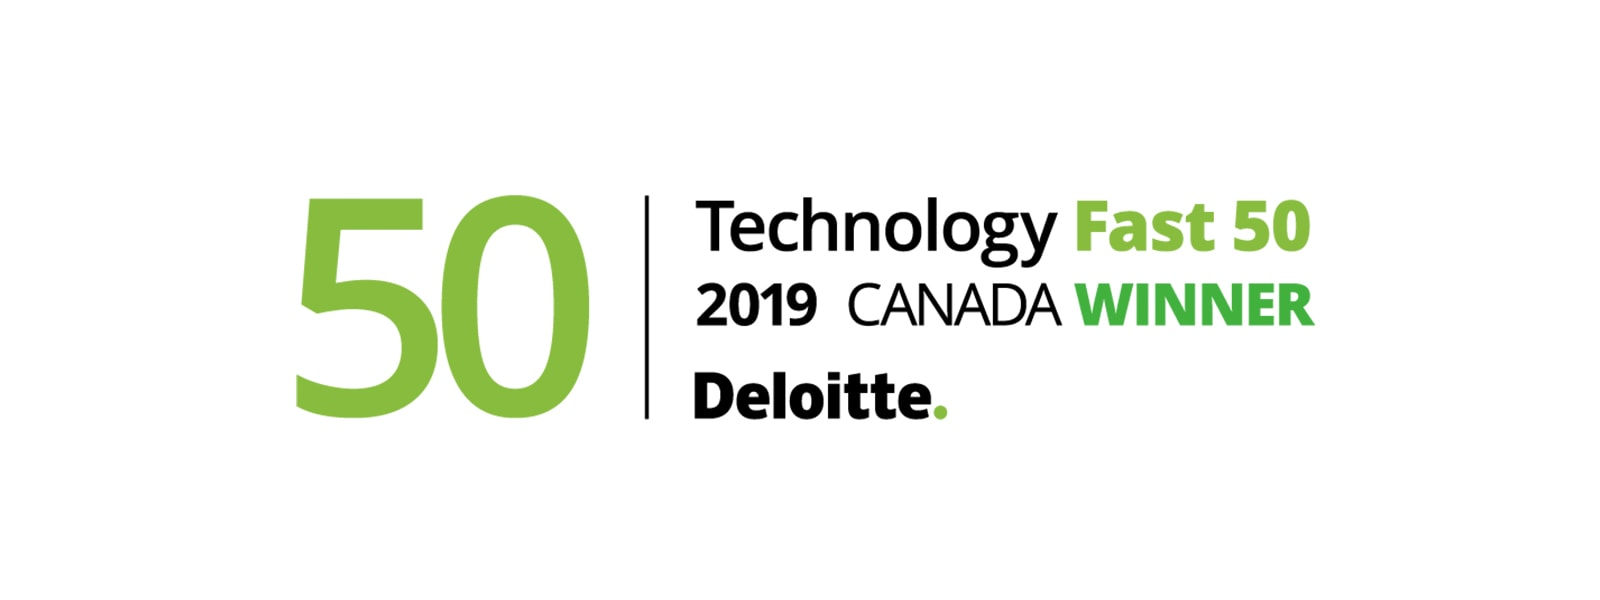 Deloitte named Vanrx one of the 50 fastest growing technology companies in Canada and one of the fastest 500 in North America in 2019.